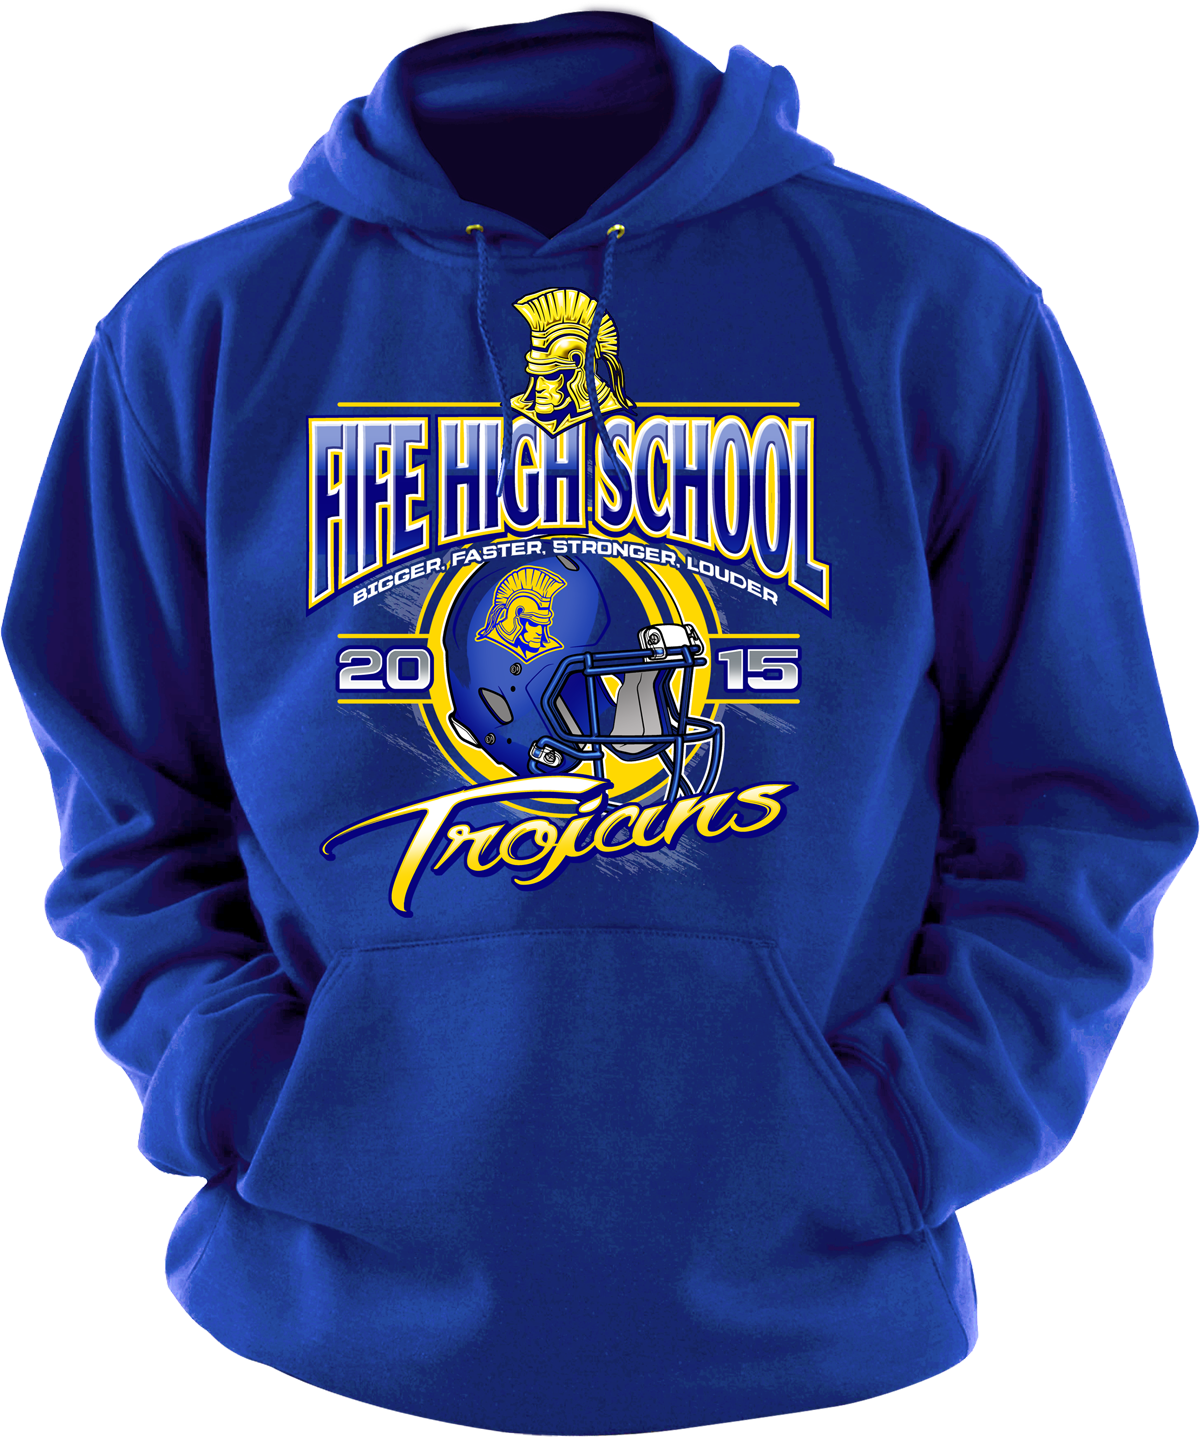 Heavyweight hoodie with an awesome Fife High School design on the front